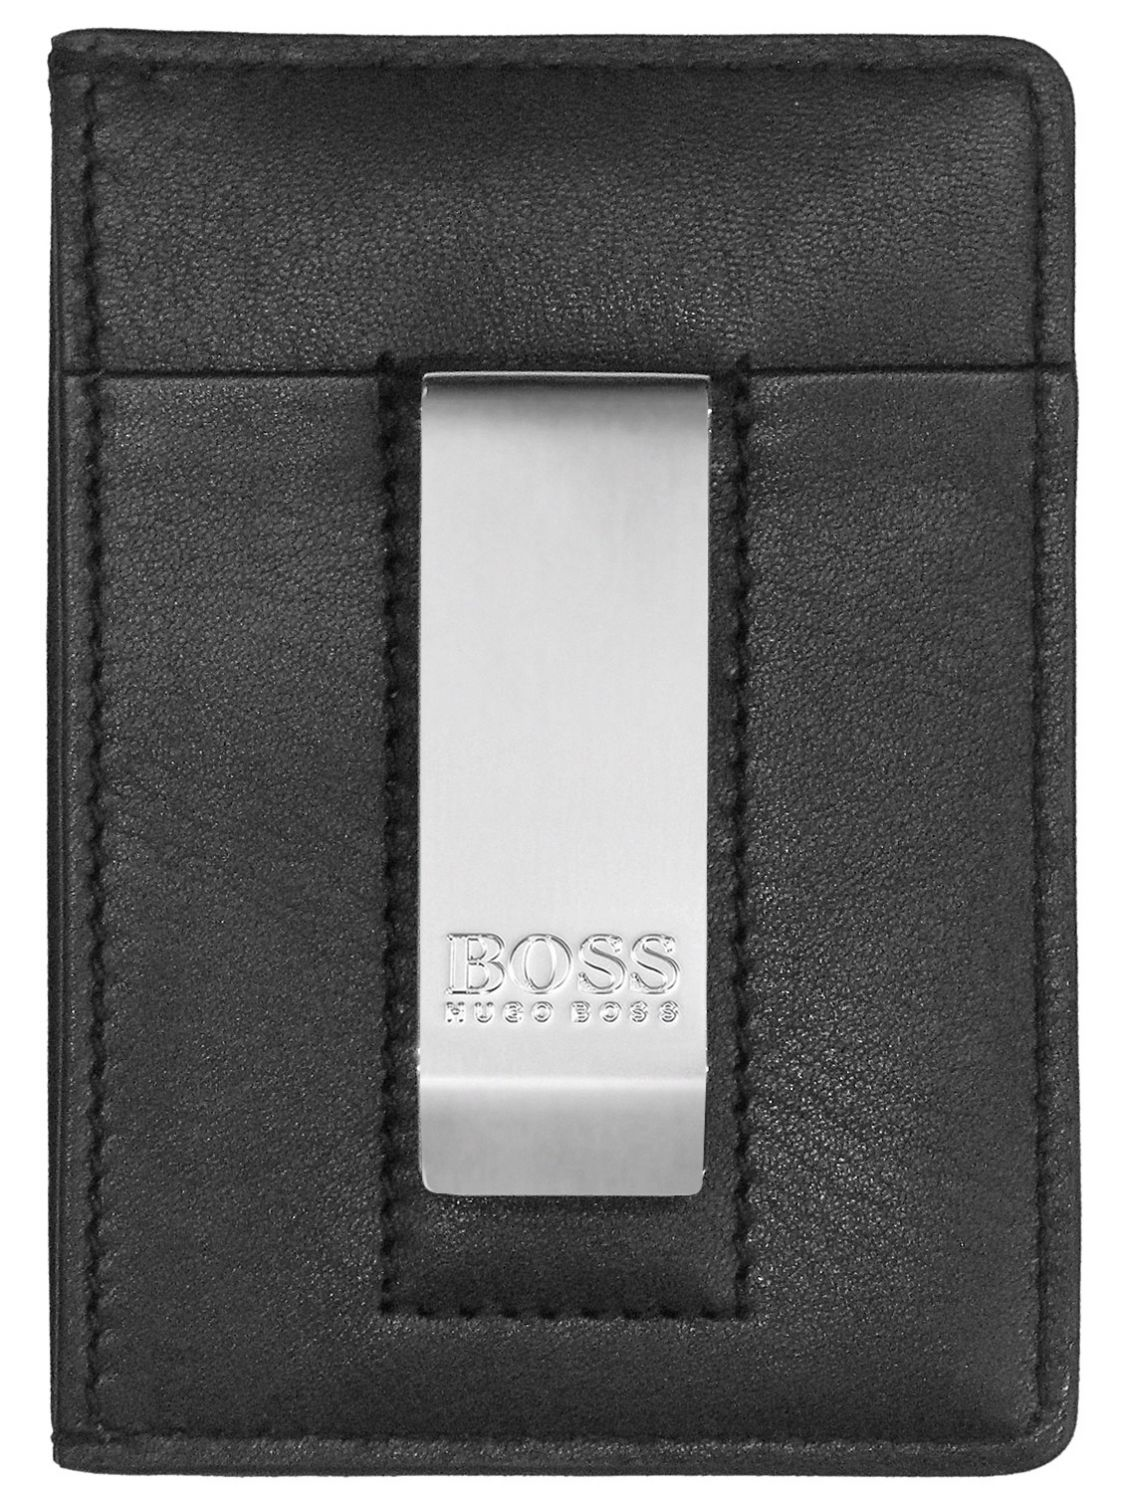 BOSS 50397487 Credit Card Case Majestic Black • uhrcenter a1c64a8bc6